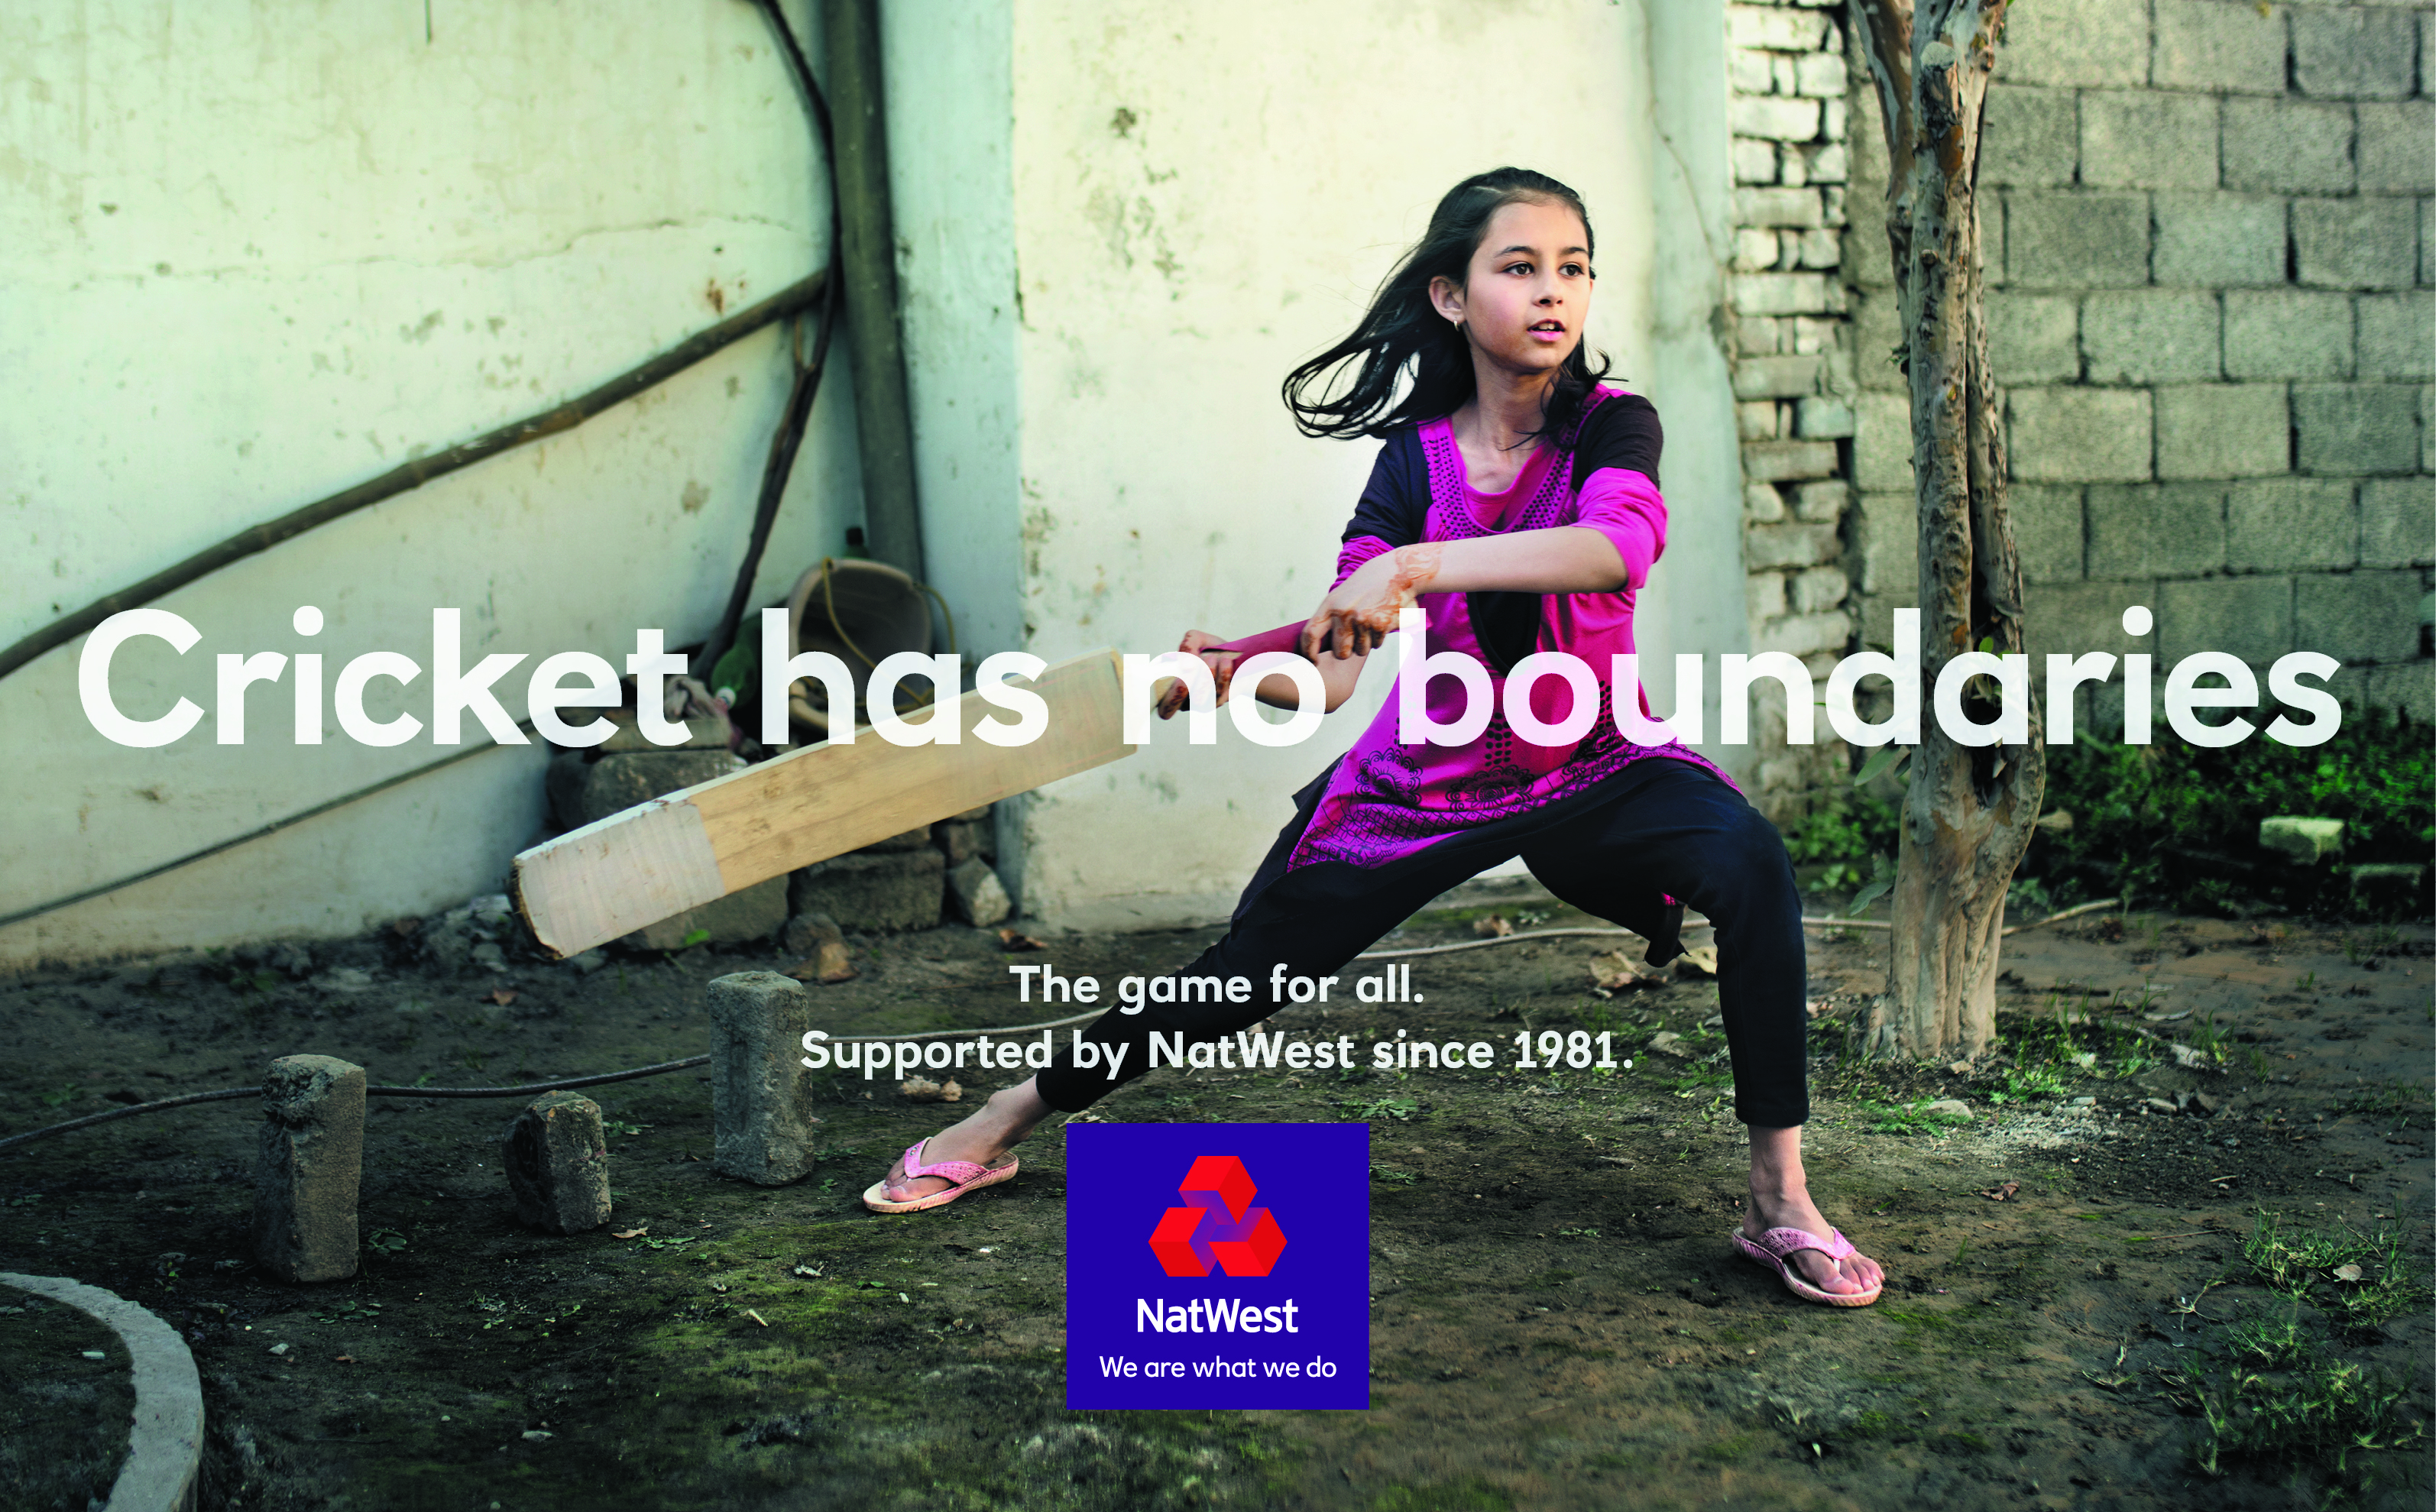 NatWest Cricket: No Boundaries